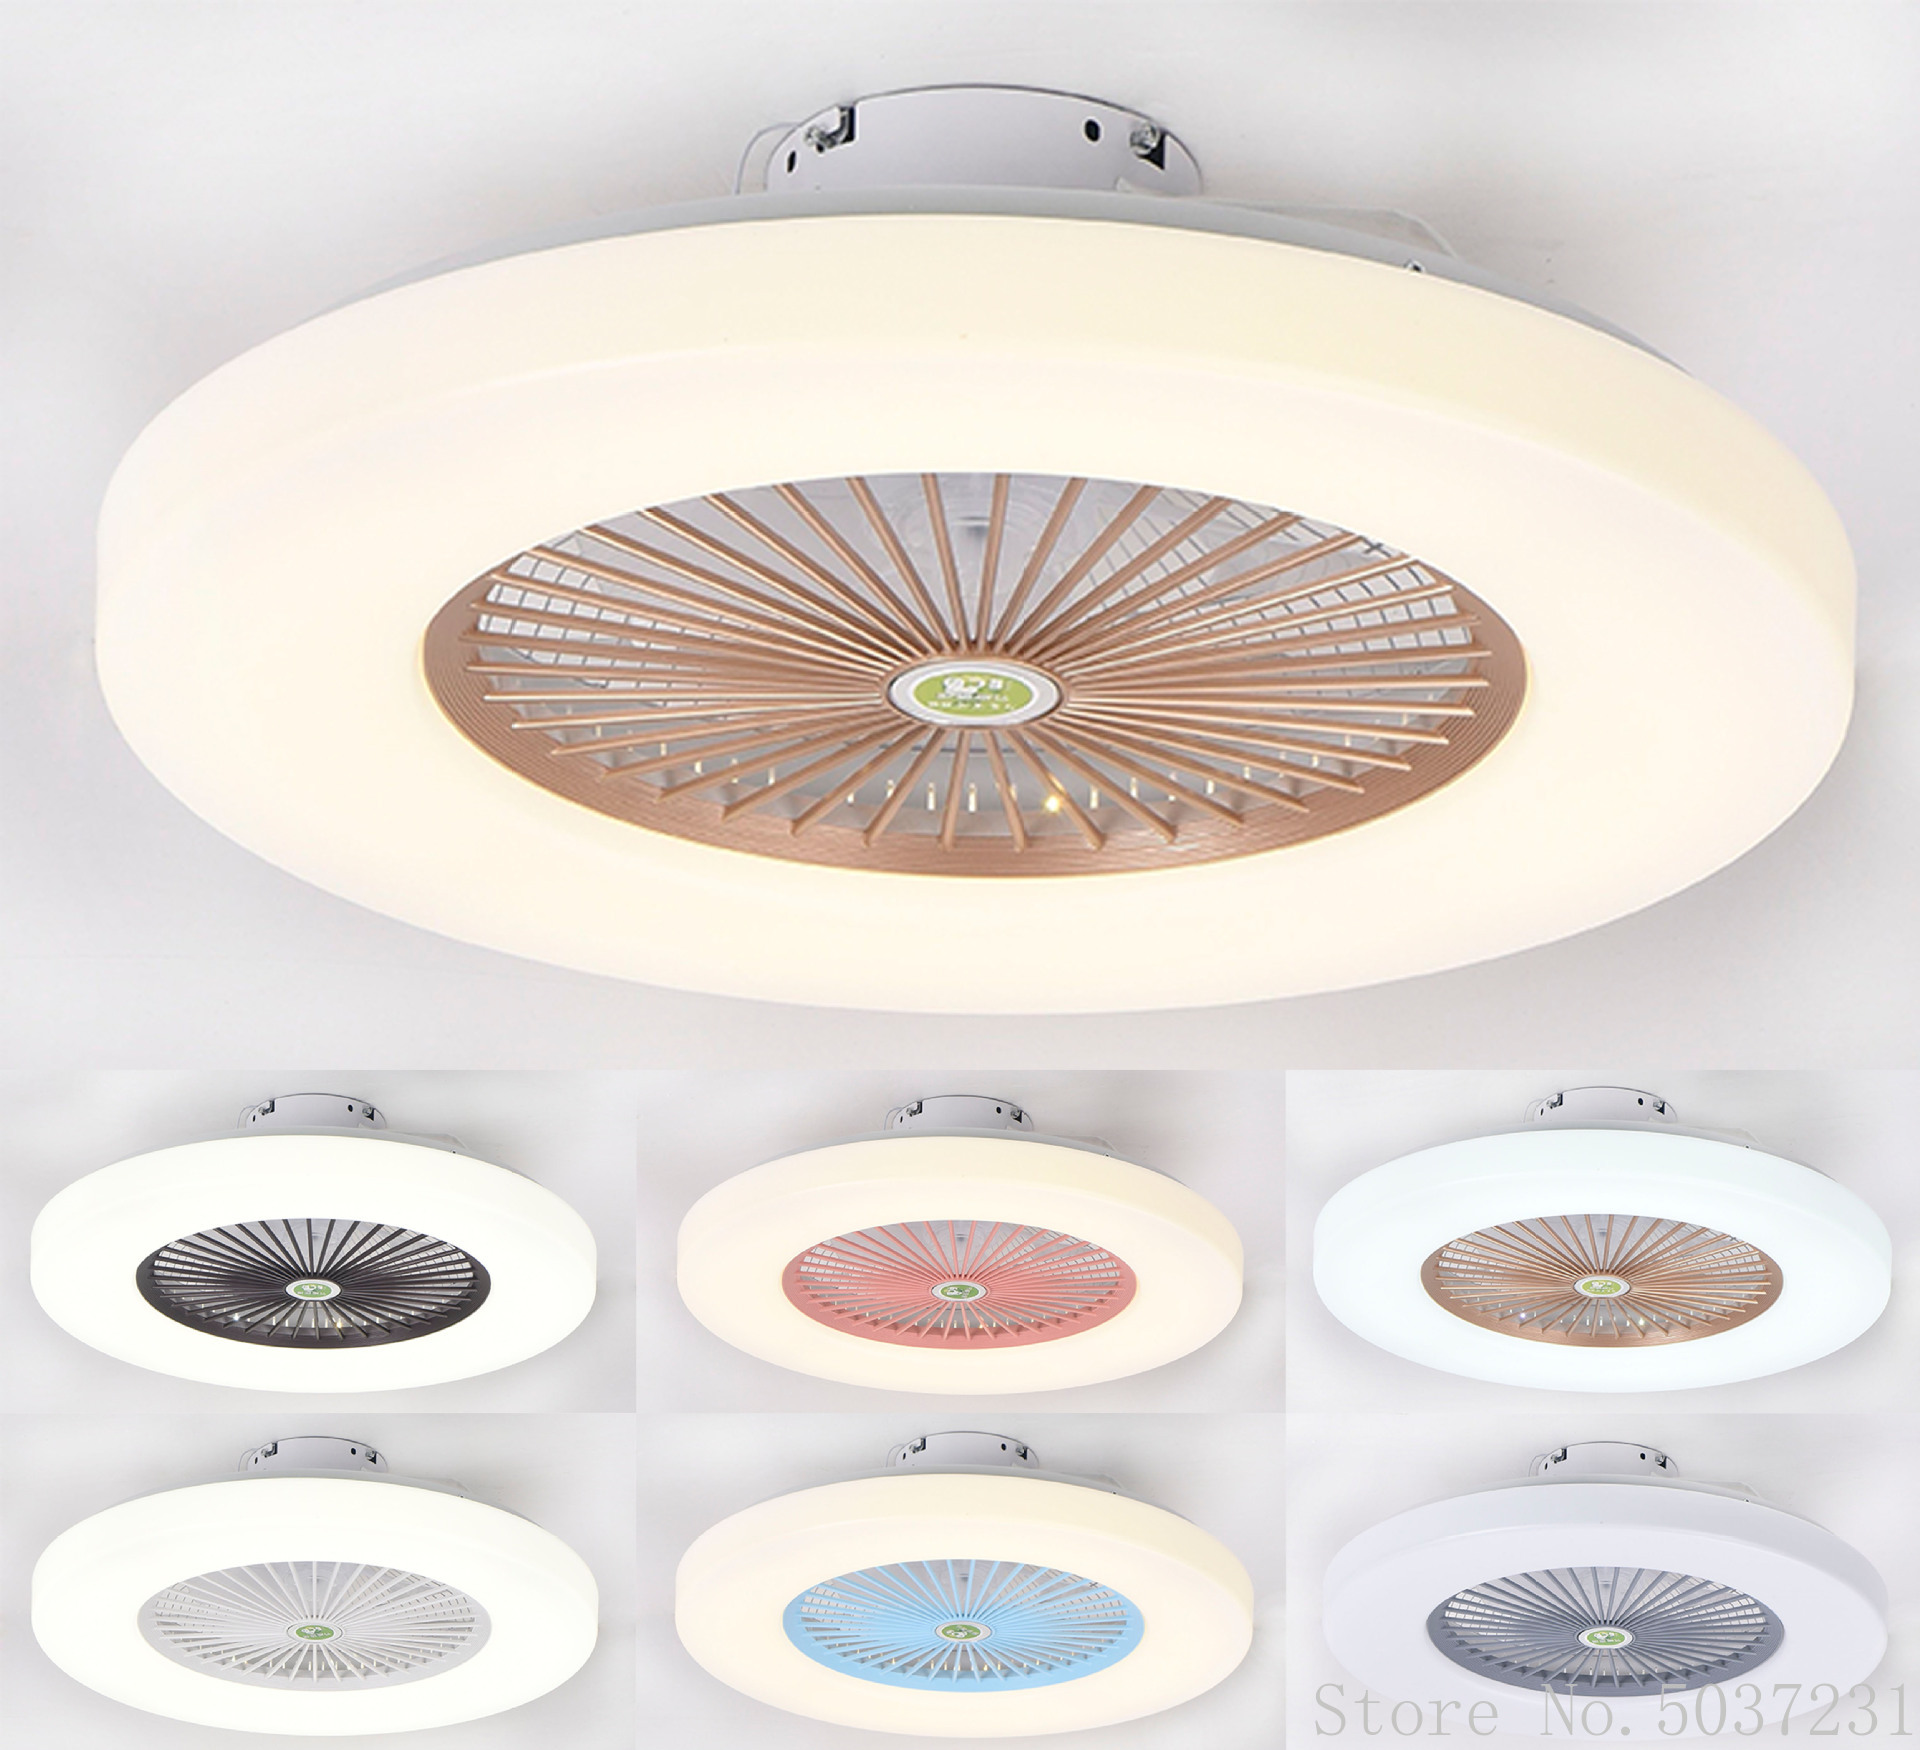 Modern Minimalist Ultra Thin Ceiling Light Fan Light Ceiling Nordic Restaurant Bedroom Led Ceiling Fan Lamp Remote Dimming Lamp Special Offer 3576 Cicig